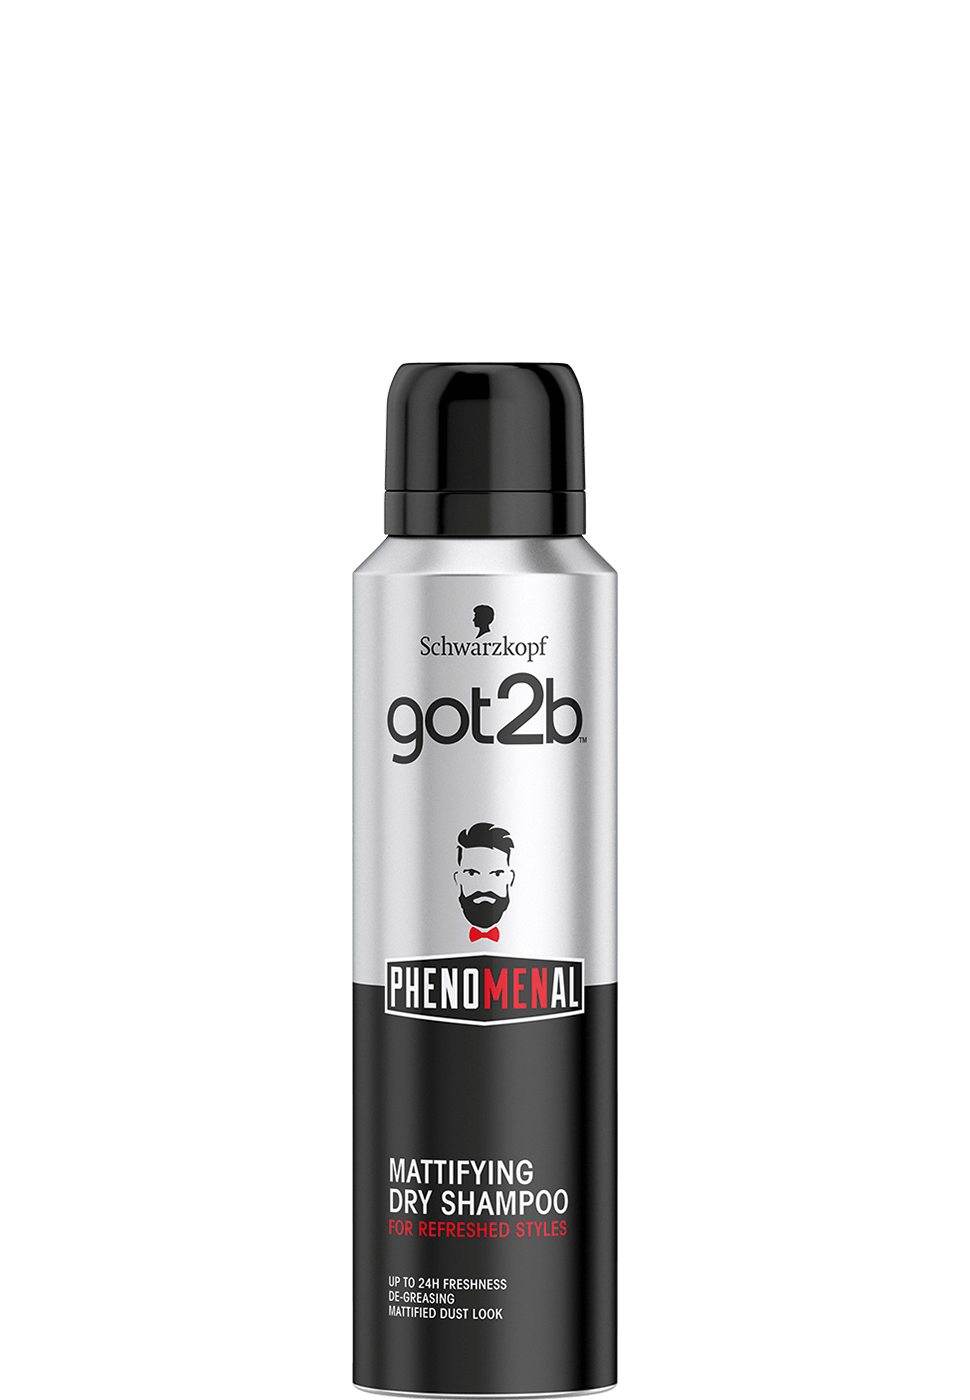 got2b_com_phenomenal_mattifying_dry_shampoo_970x1400